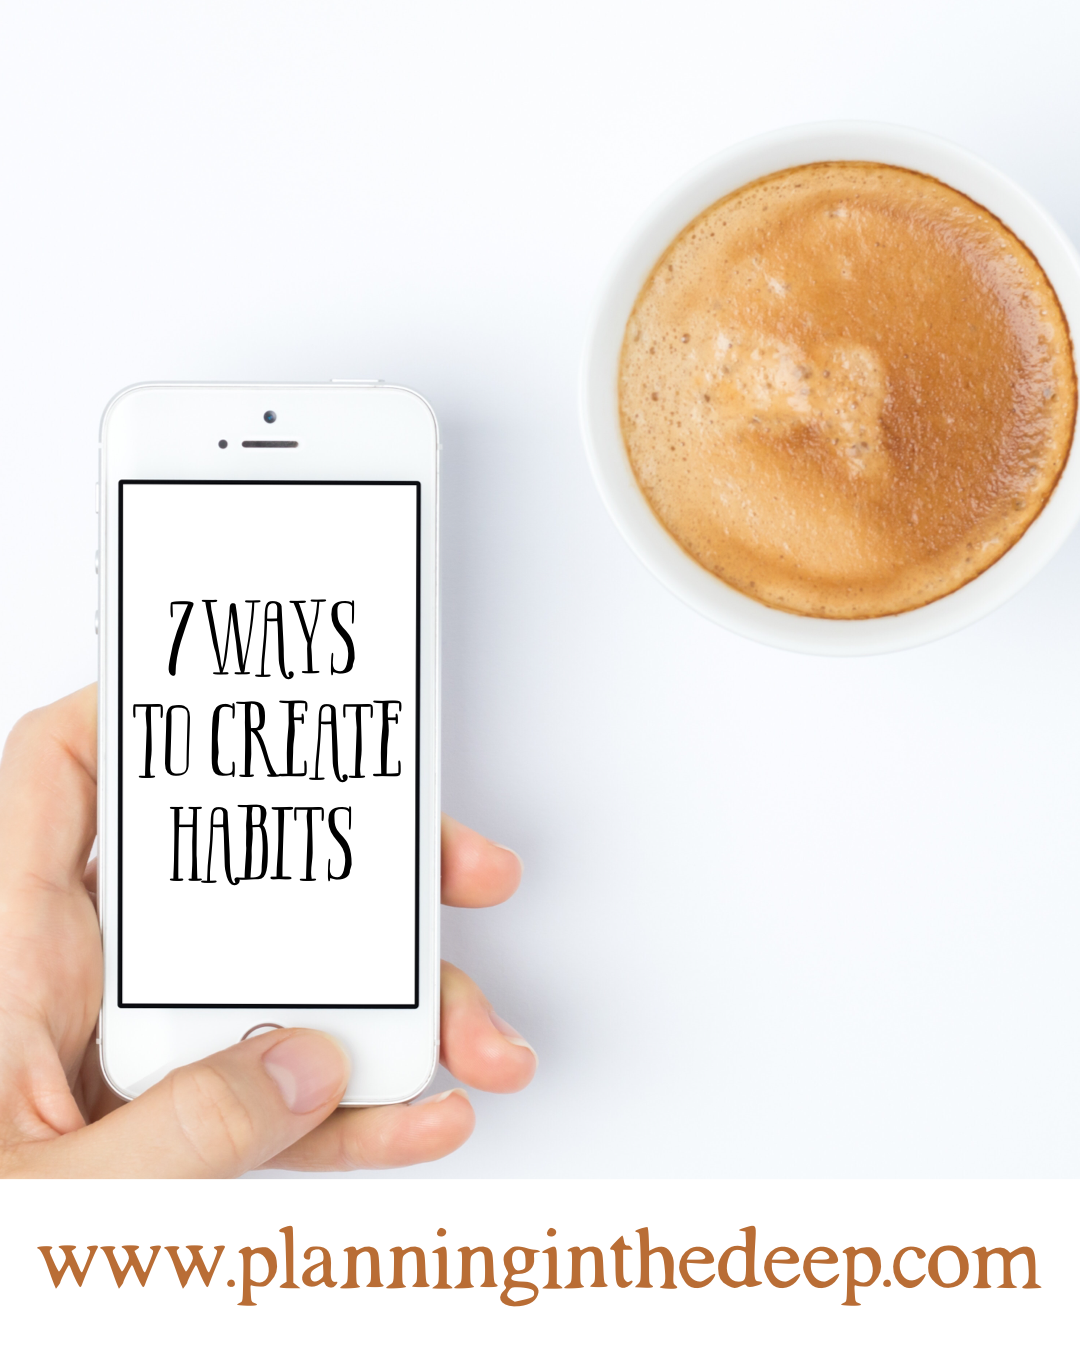 7 Ways To Establish Daily Habits And Actually Stick With Them.